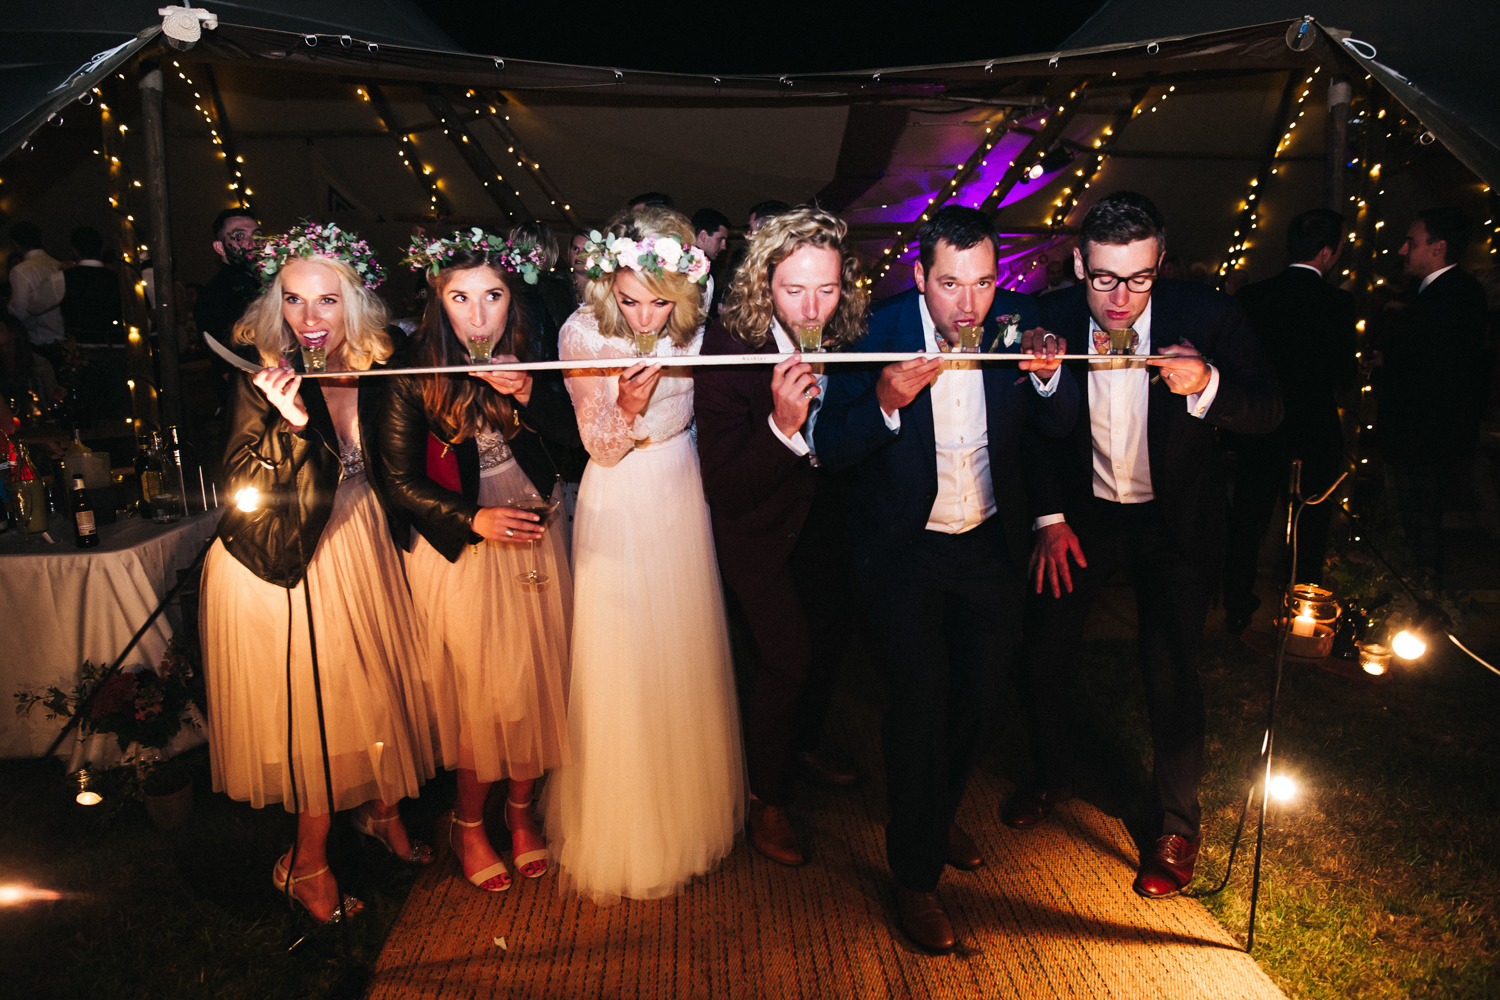 creative-relaxed-wedding-photography-stop-motion-films-teesside-north-east-yorkshire-0022.jpg